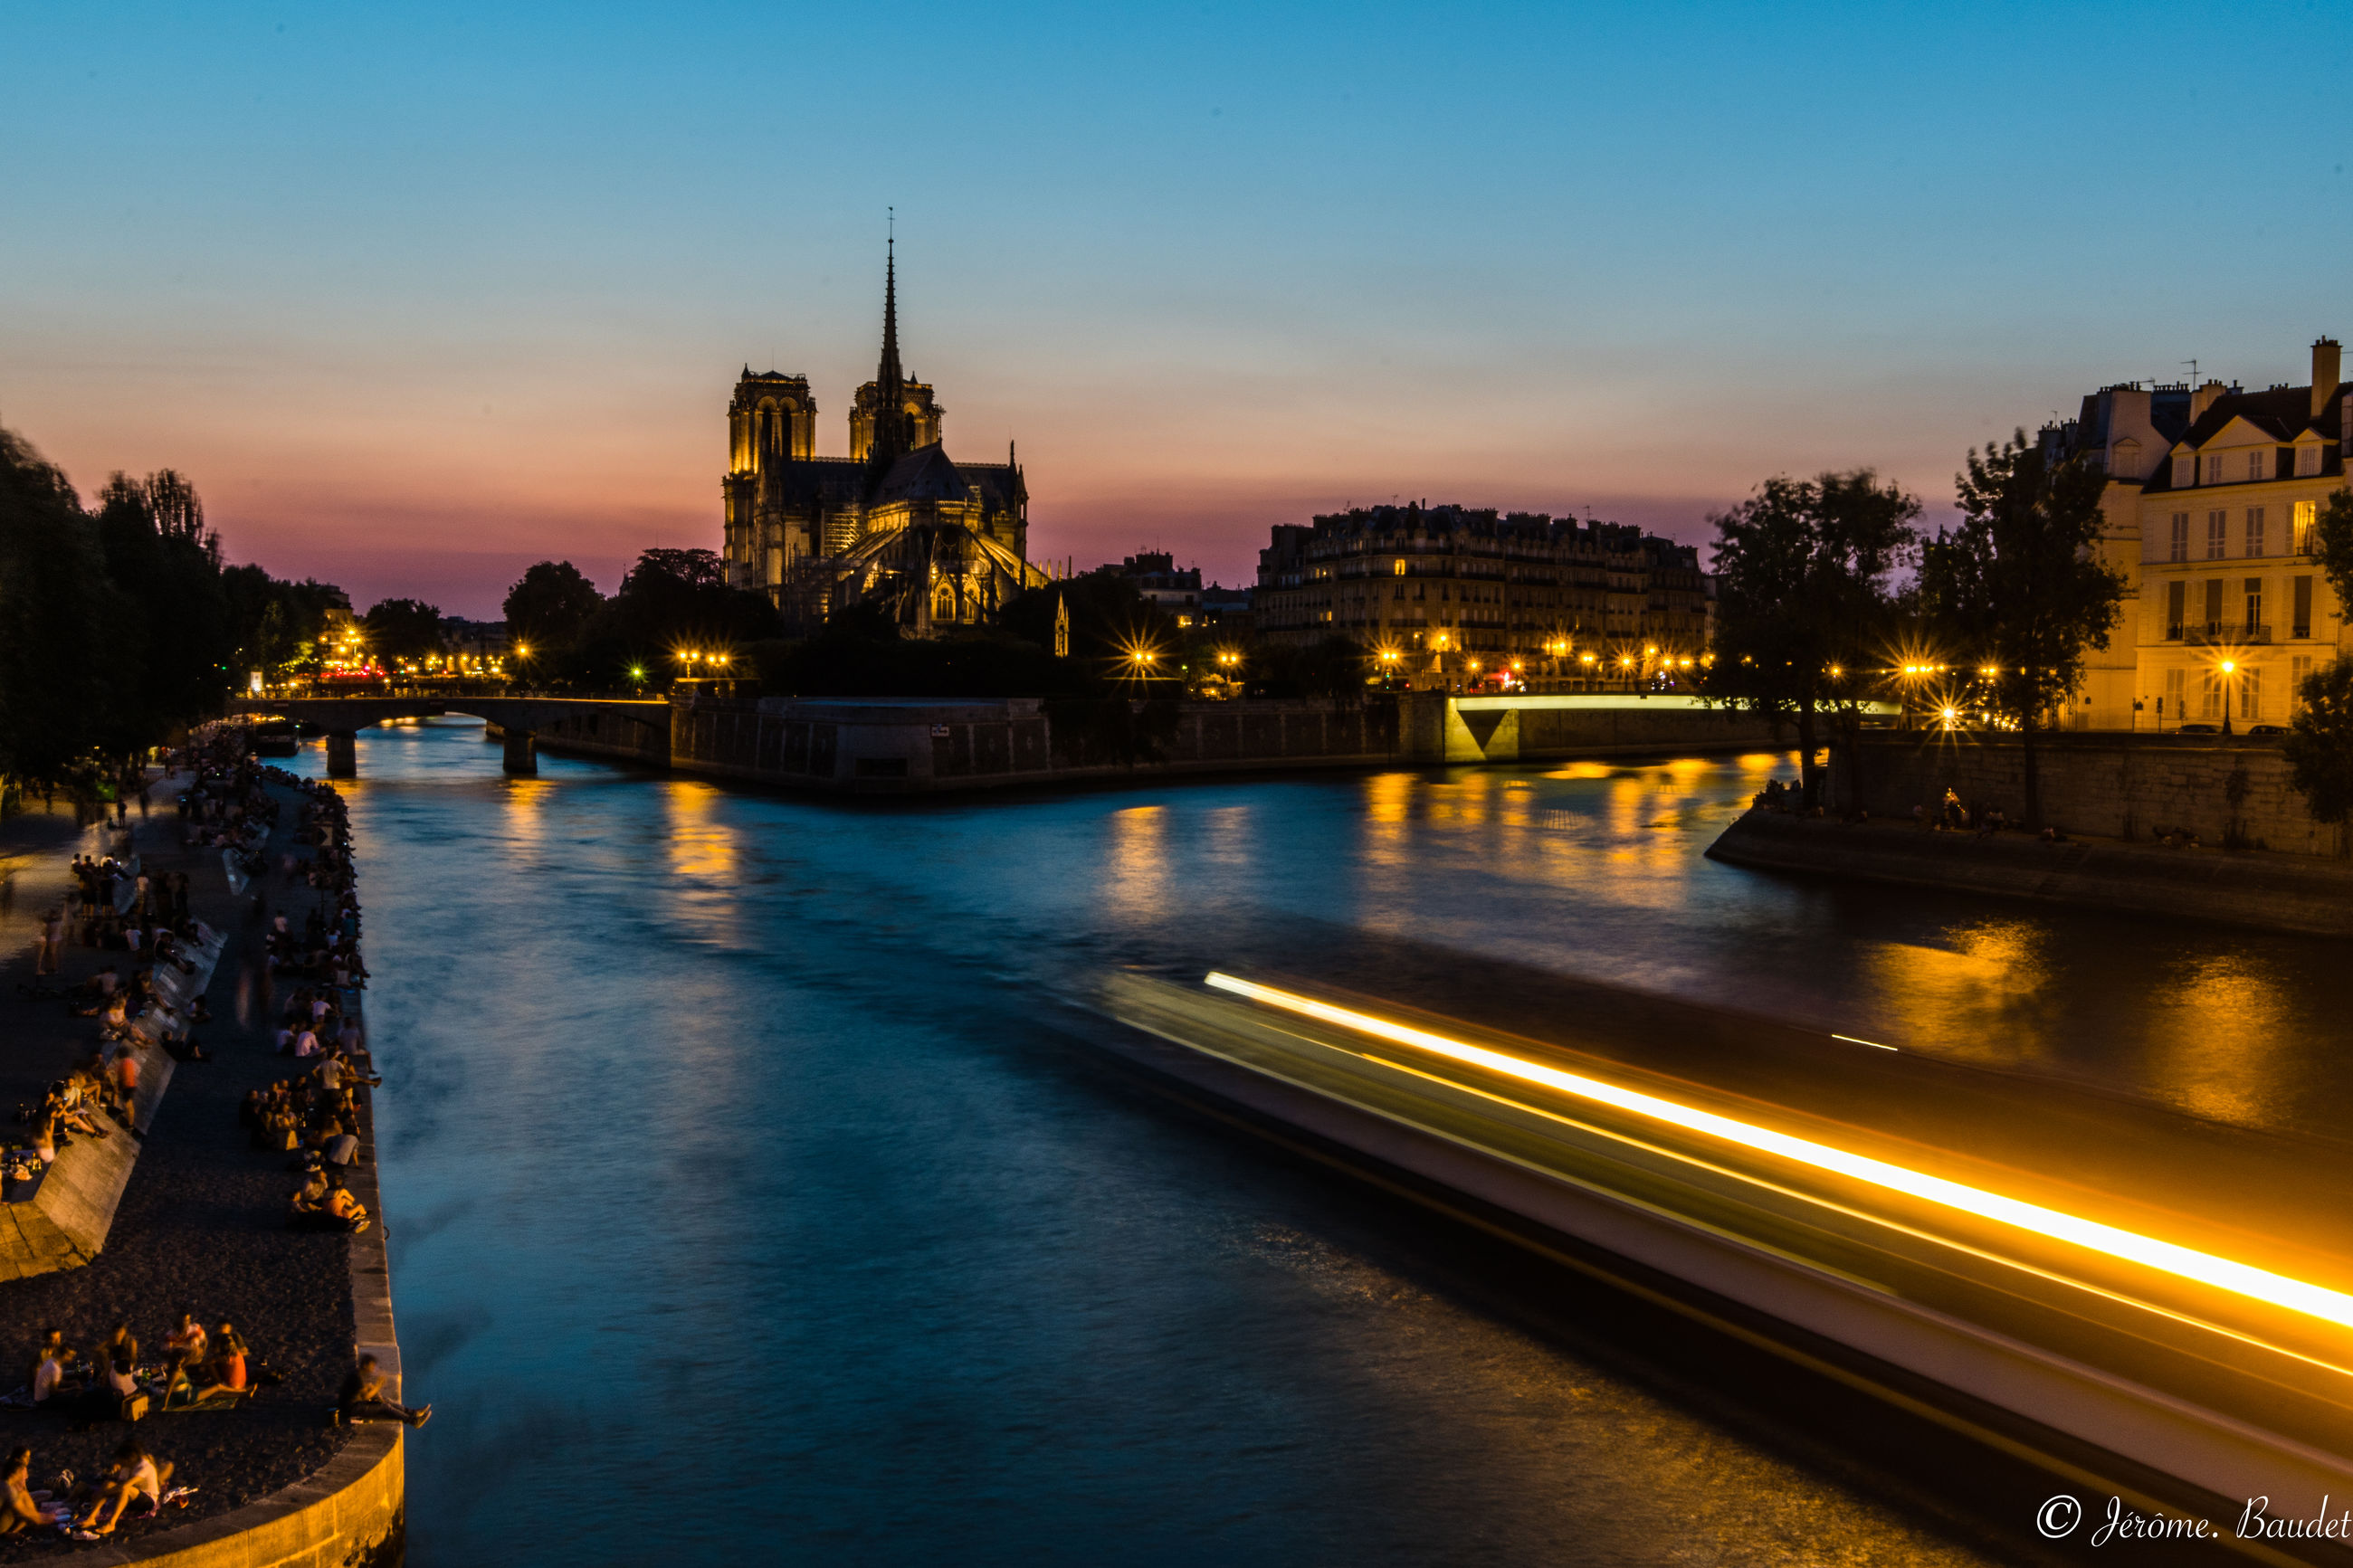 illuminated, architecture, built structure, water, building exterior, sky, river, transportation, long exposure, travel destinations, sunset, nature, night, city, bridge, reflection, motion, light trail, connection, no people, bridge - man made structure, outdoors